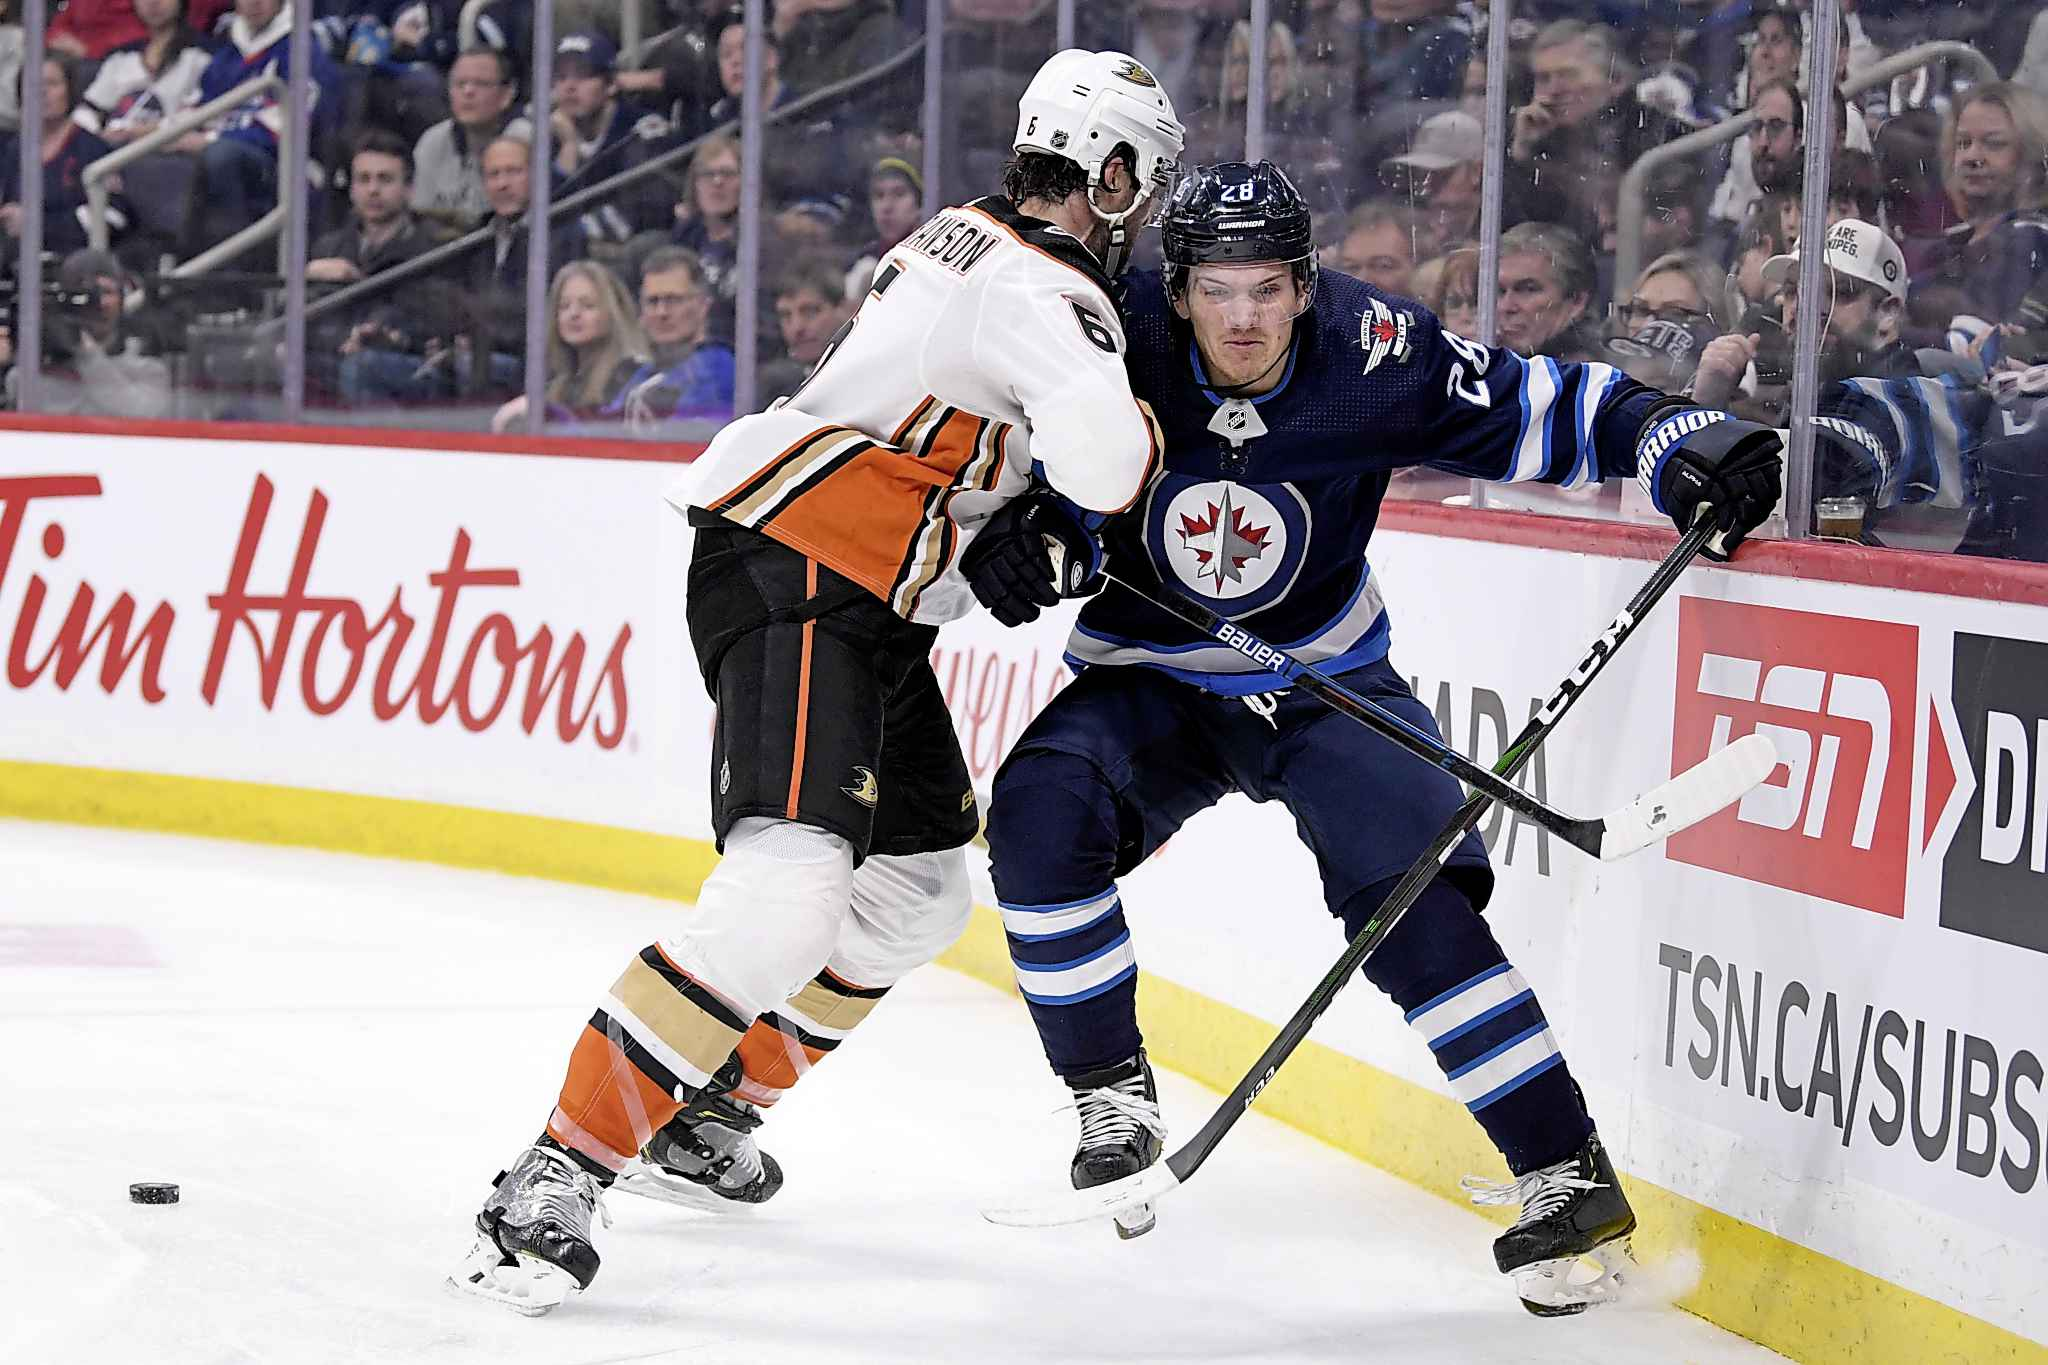 Winnipeg Jets' Jack Roslovic (28) braces for the hit as Anaheim Ducks' Erik Gudbranson (6) checks him into the boards during the second period. (Fred Greenslade / The Canadian Press)</p>